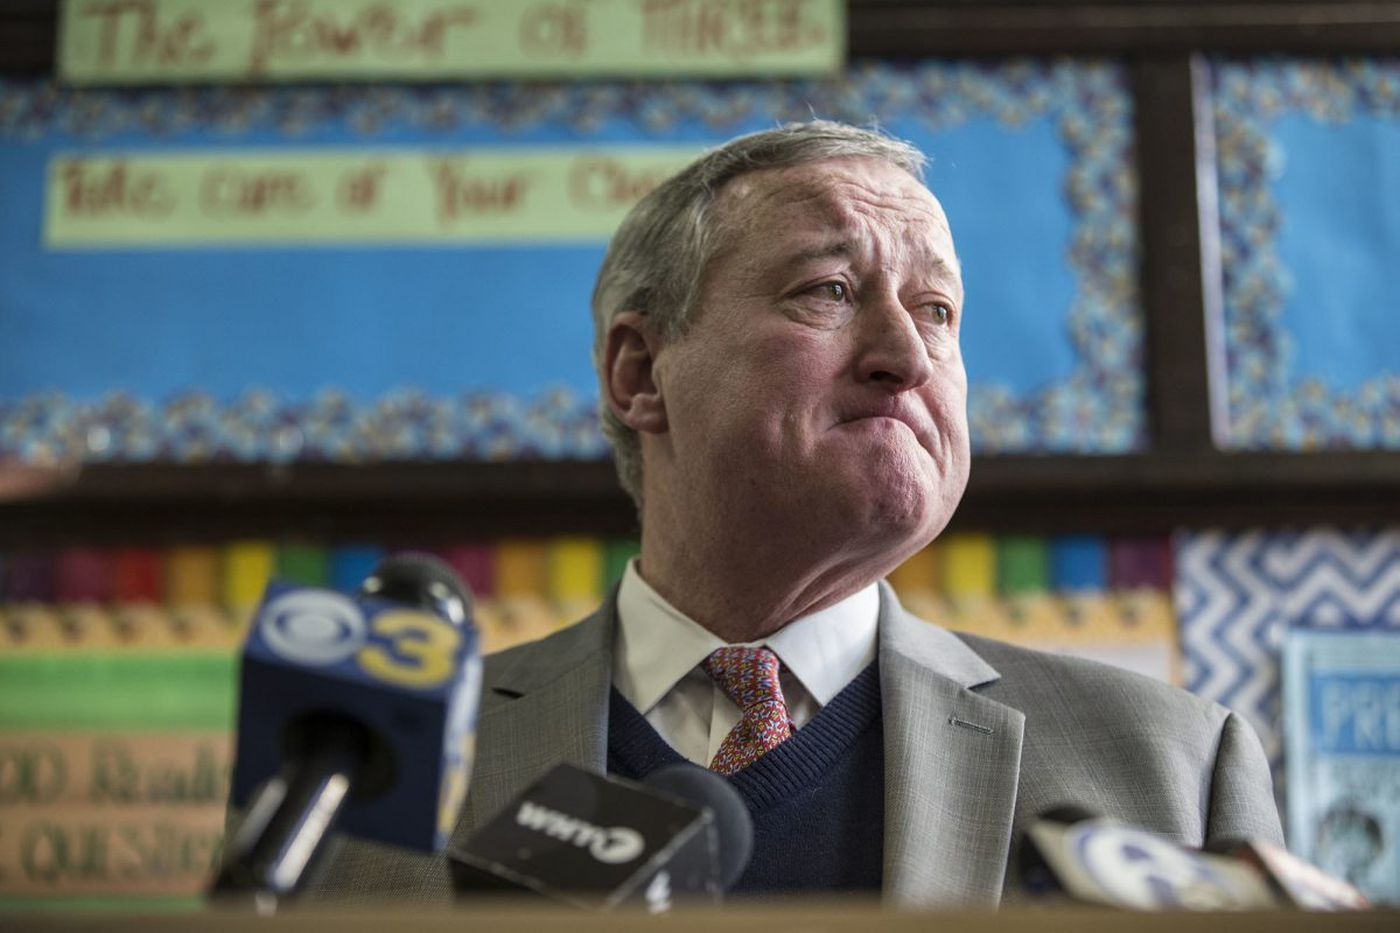 Mayor Kenney's budget wish list: Higher property taxes, transfer fees to fund extra $1 billion for schools